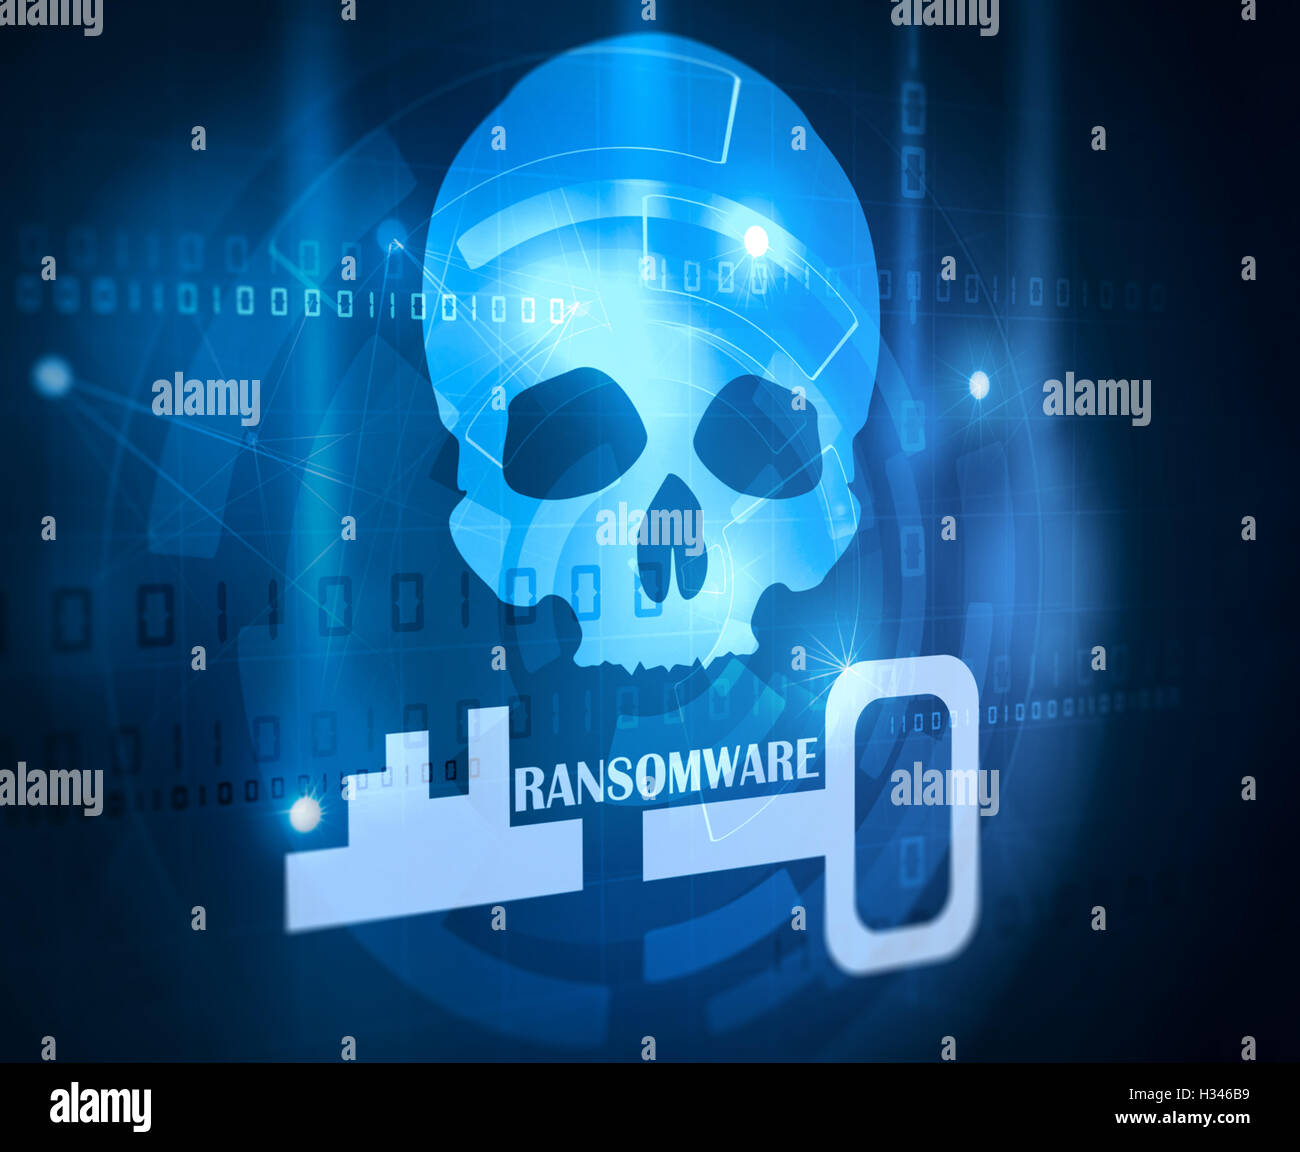 computer antivirus software - Stock Image